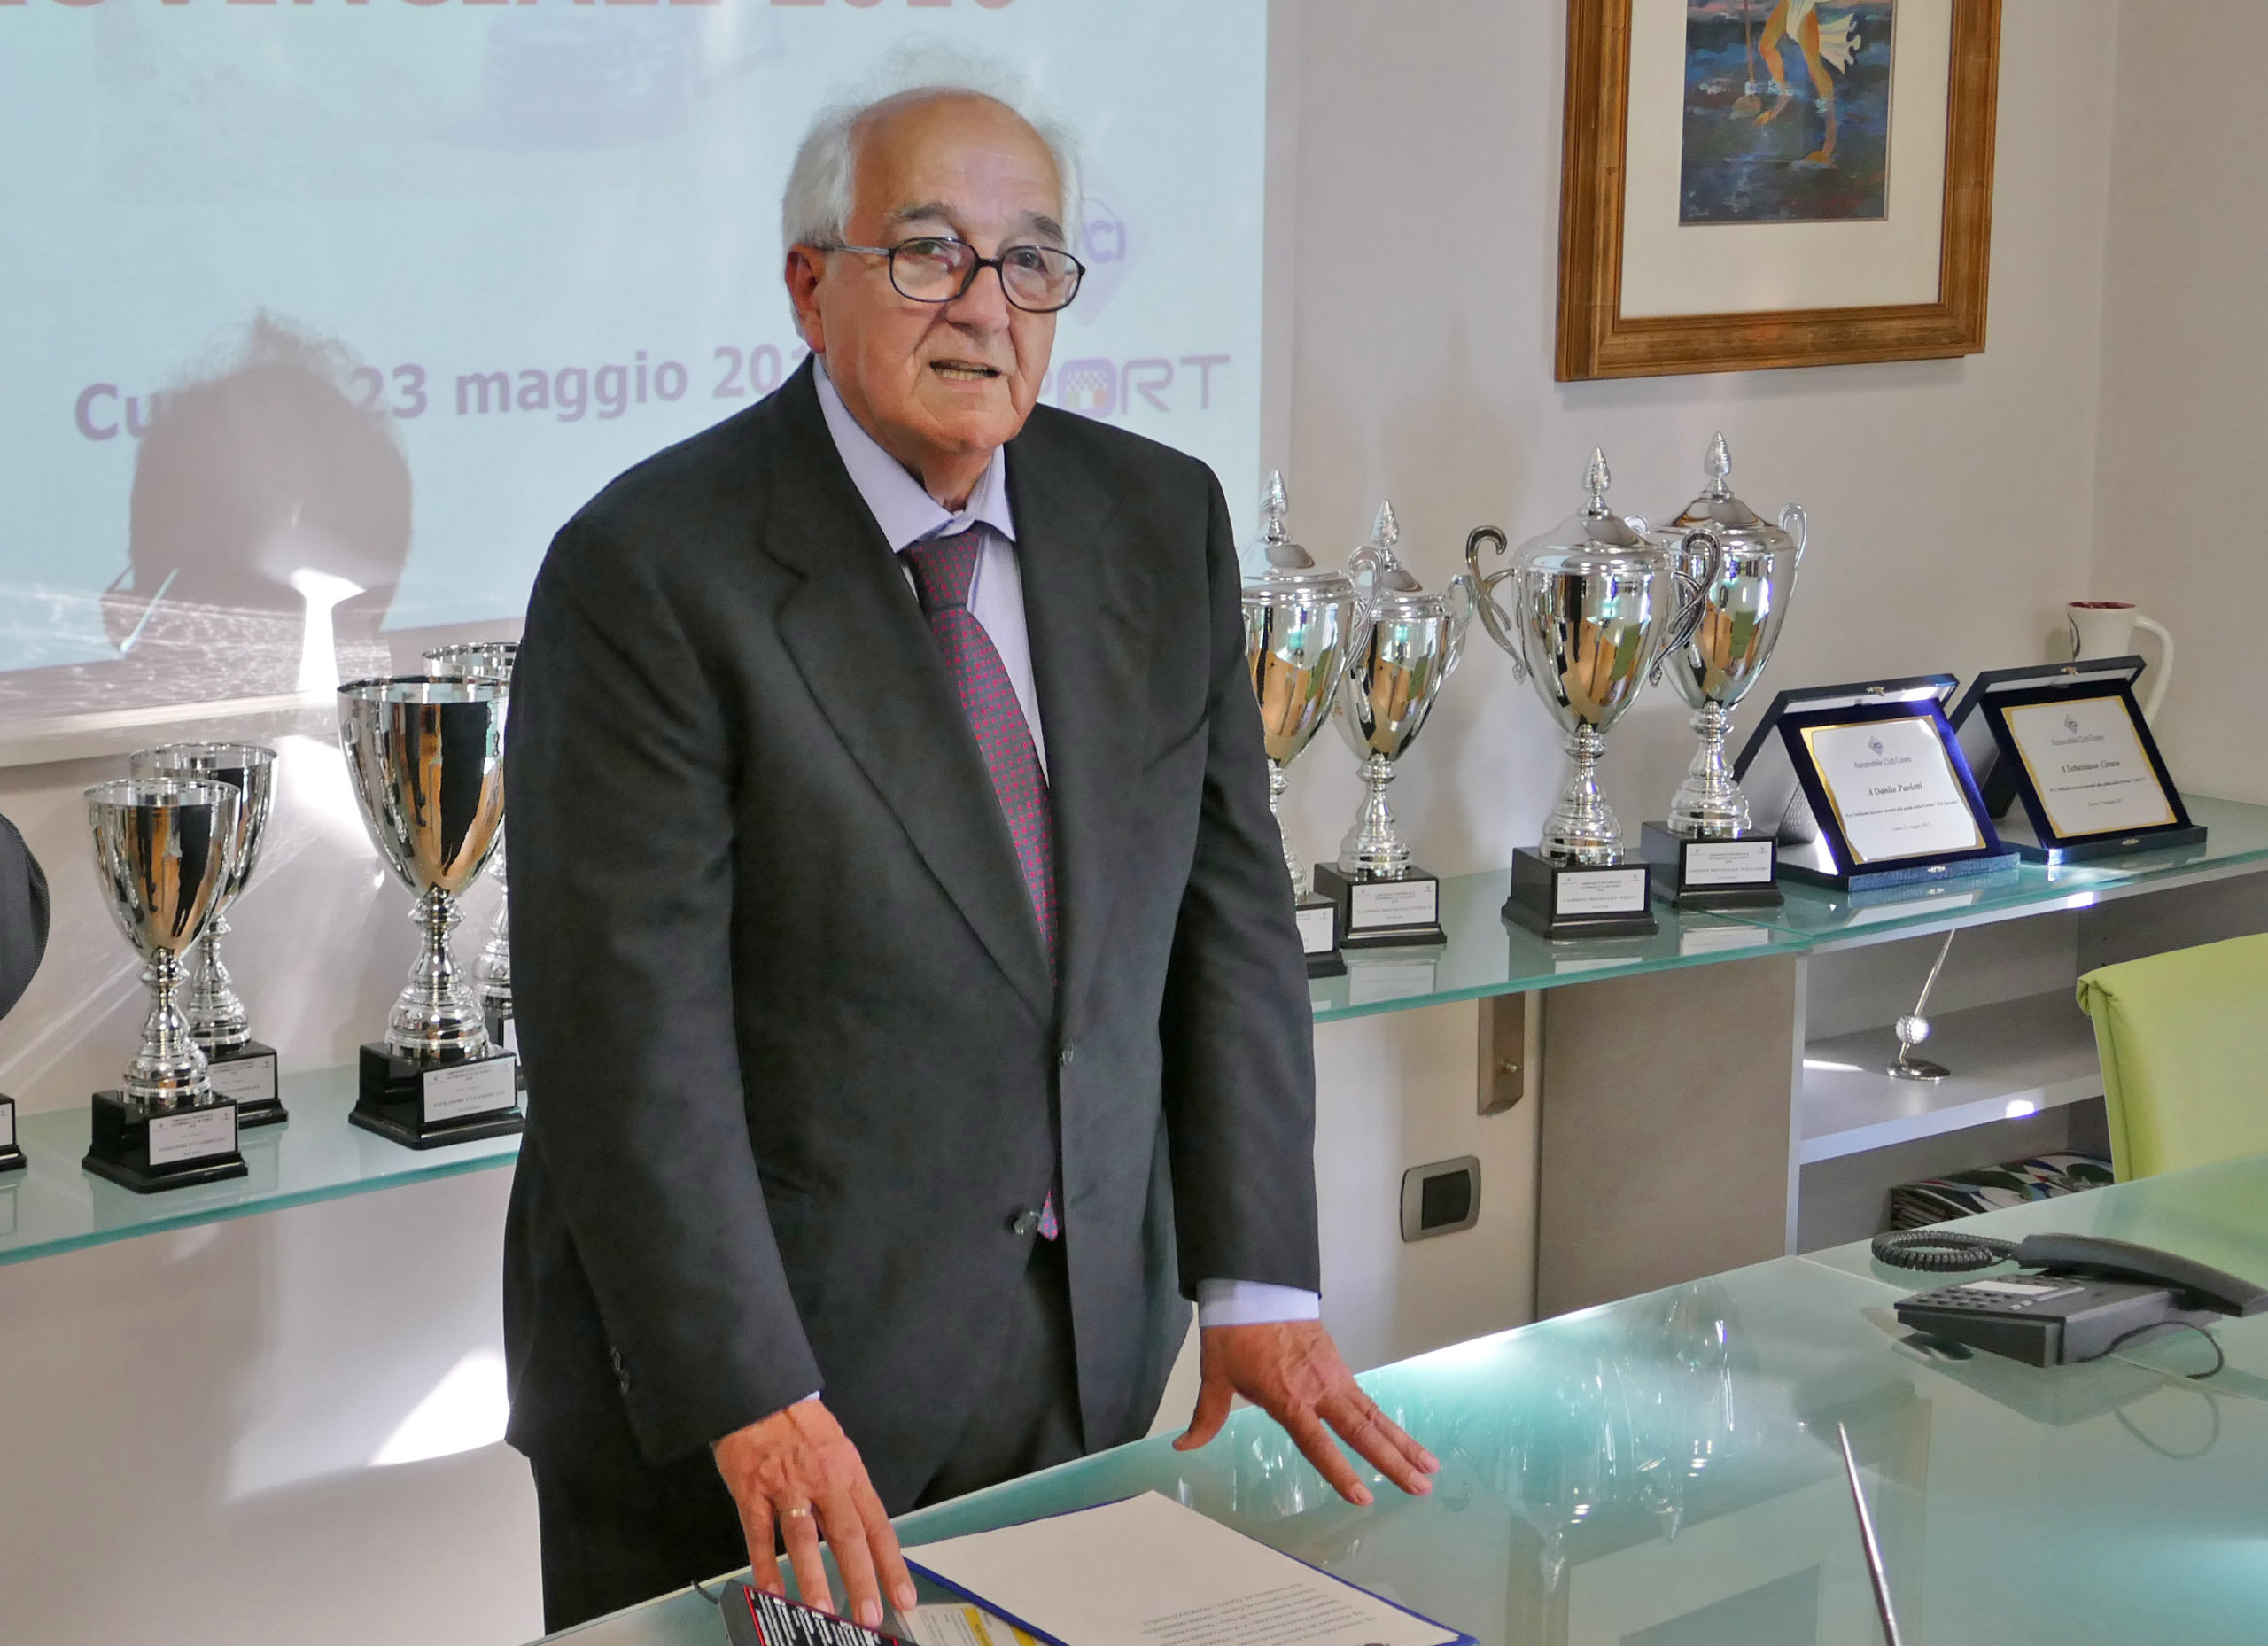 Francesco Revelli, presidente dell'Automobile Club Cuneo